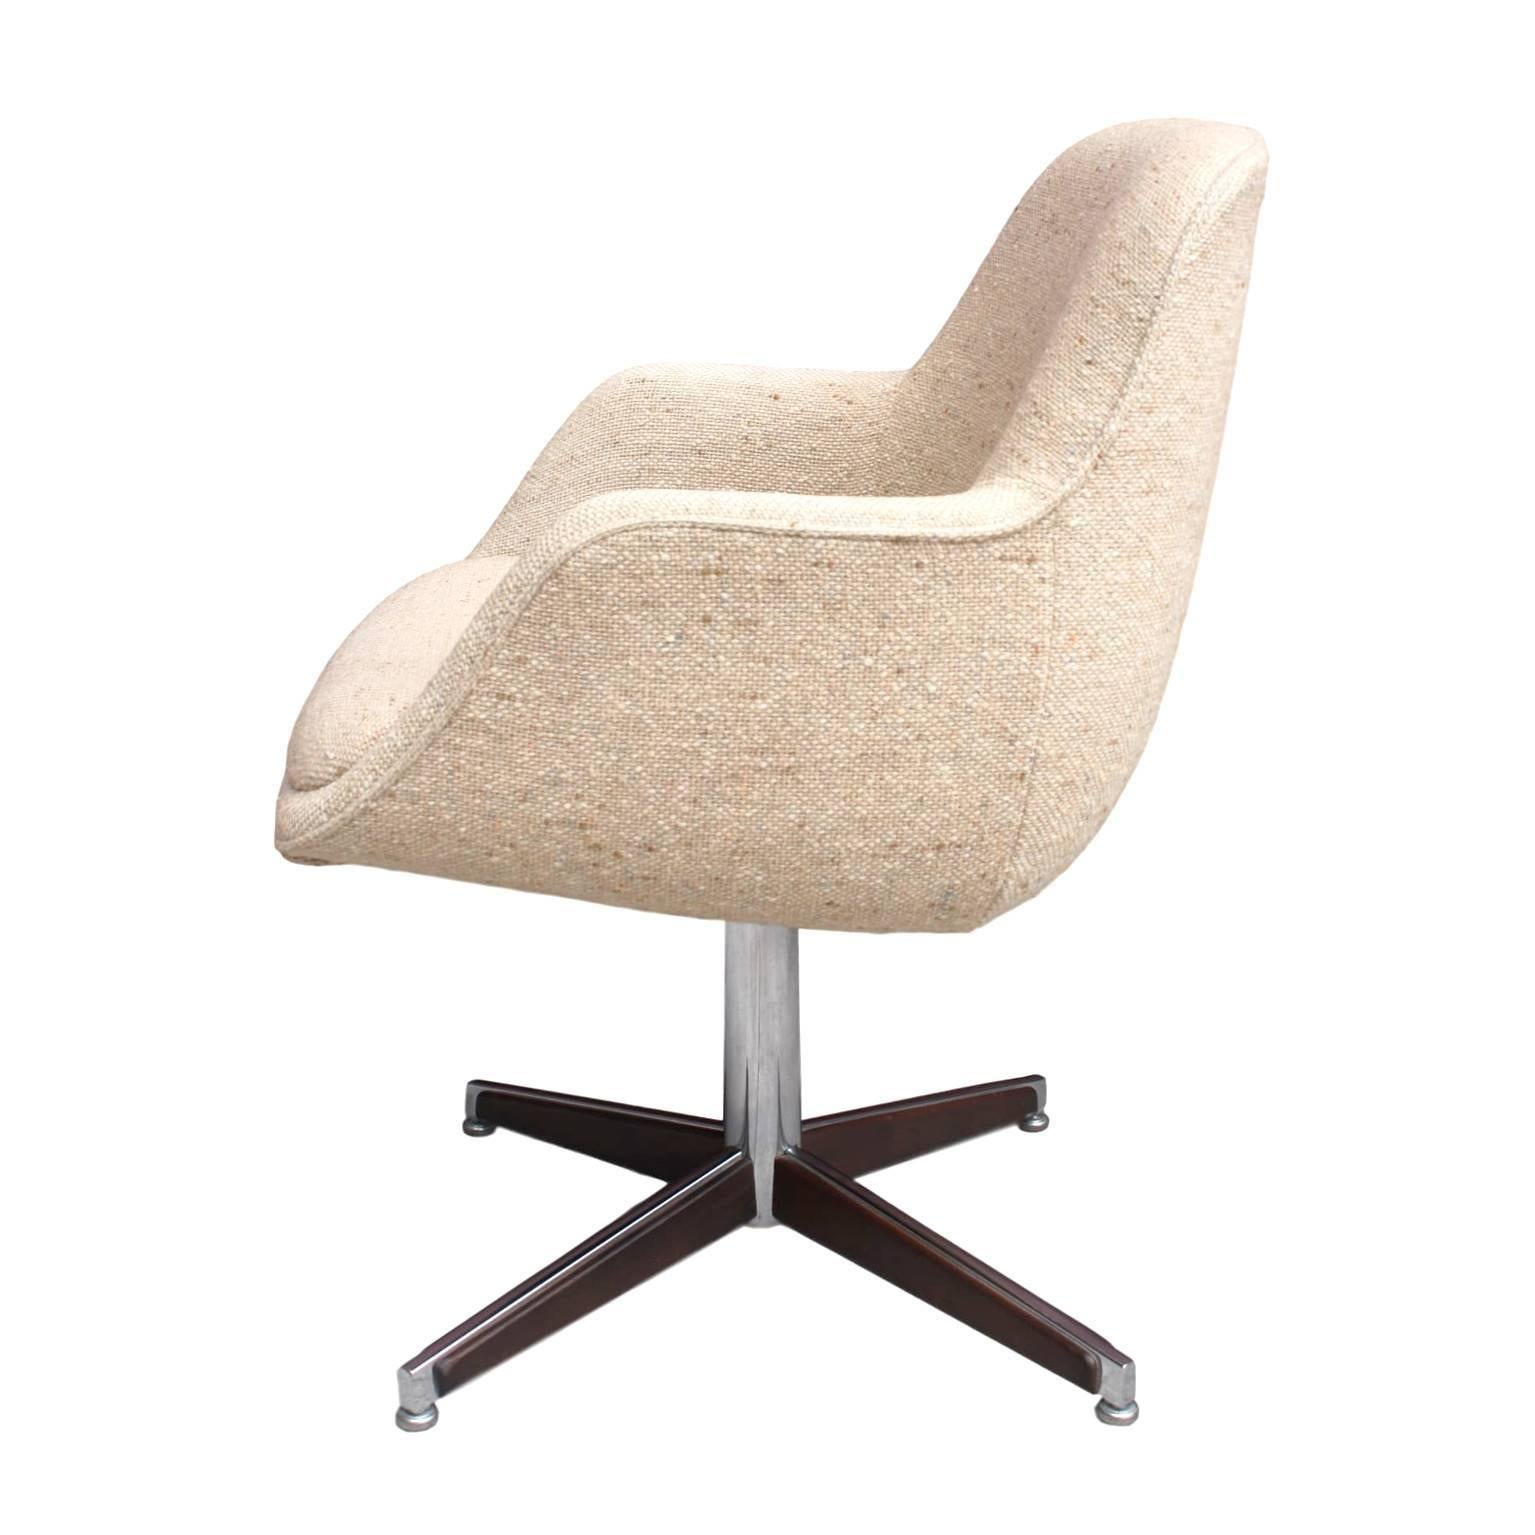 1960s mid century modern walnut and chrome desk chair with cream upholstery at 1stdibs